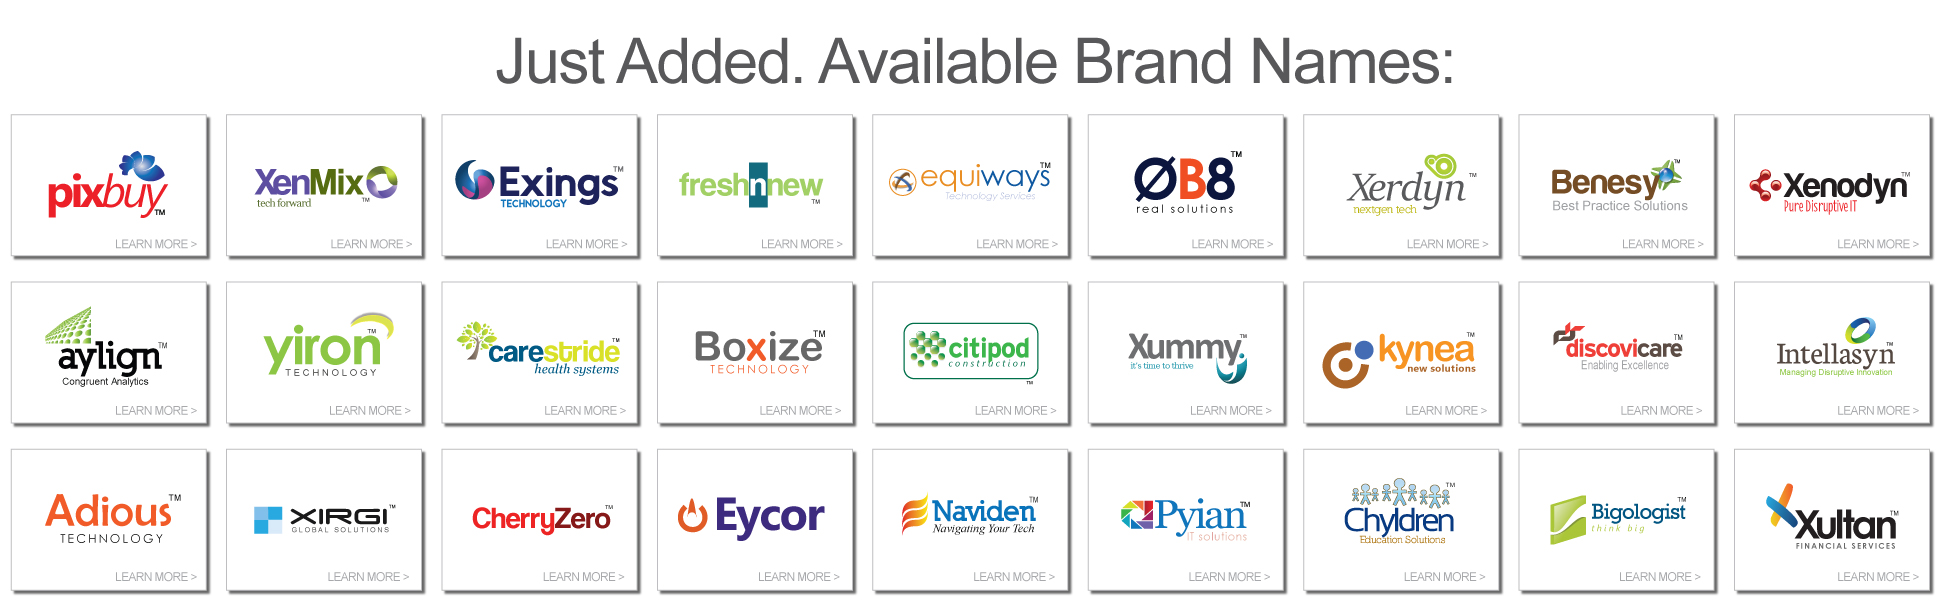 just added available brand names